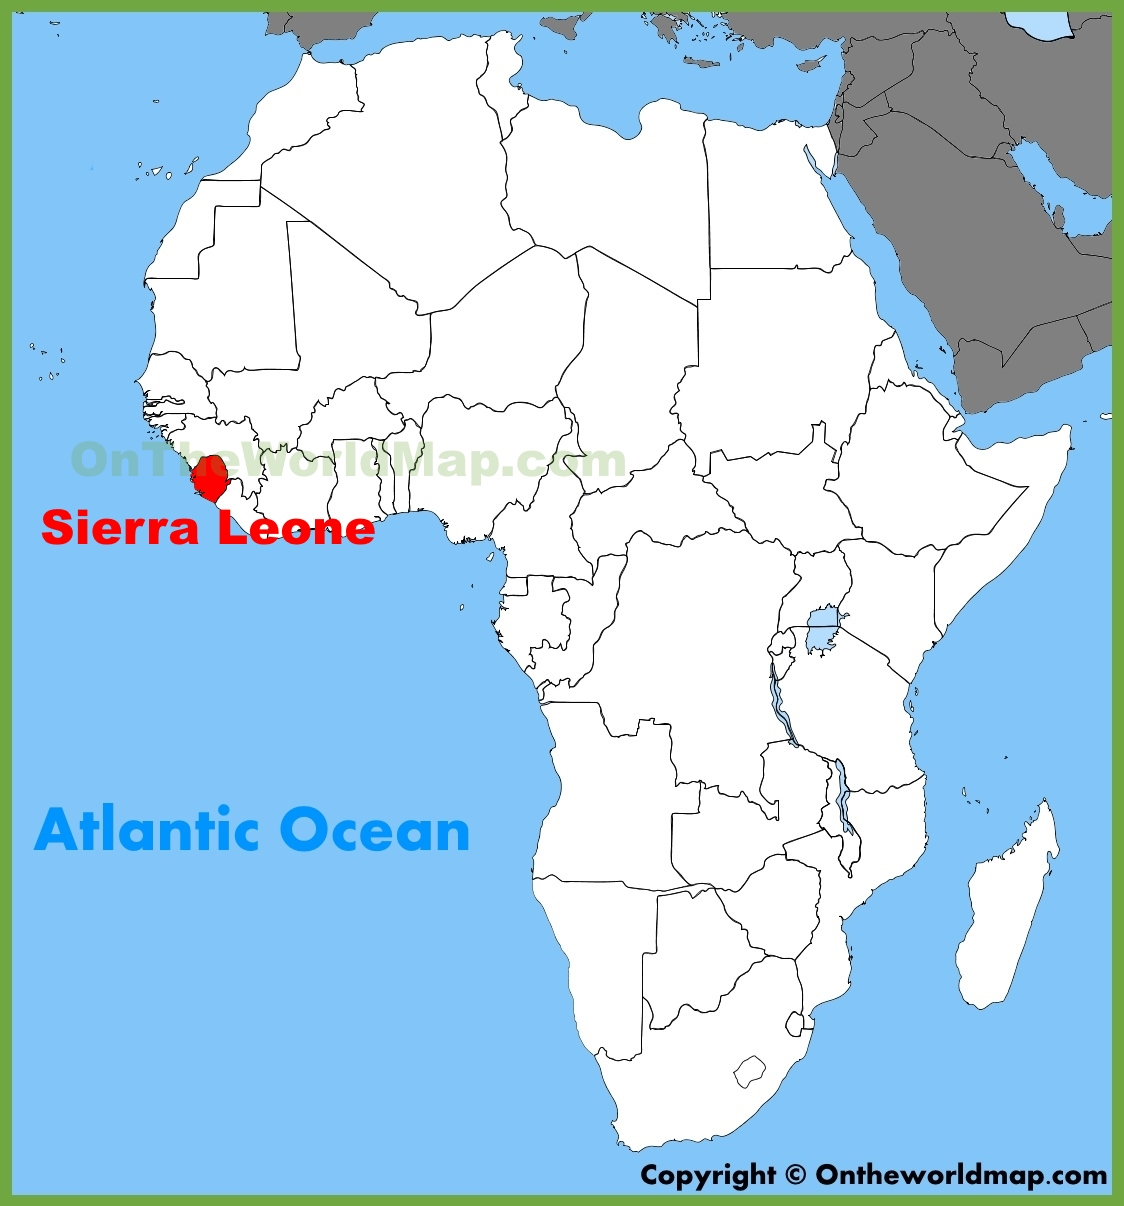 Sierra Leone Map Africa Sierra Leone location on the Africa map